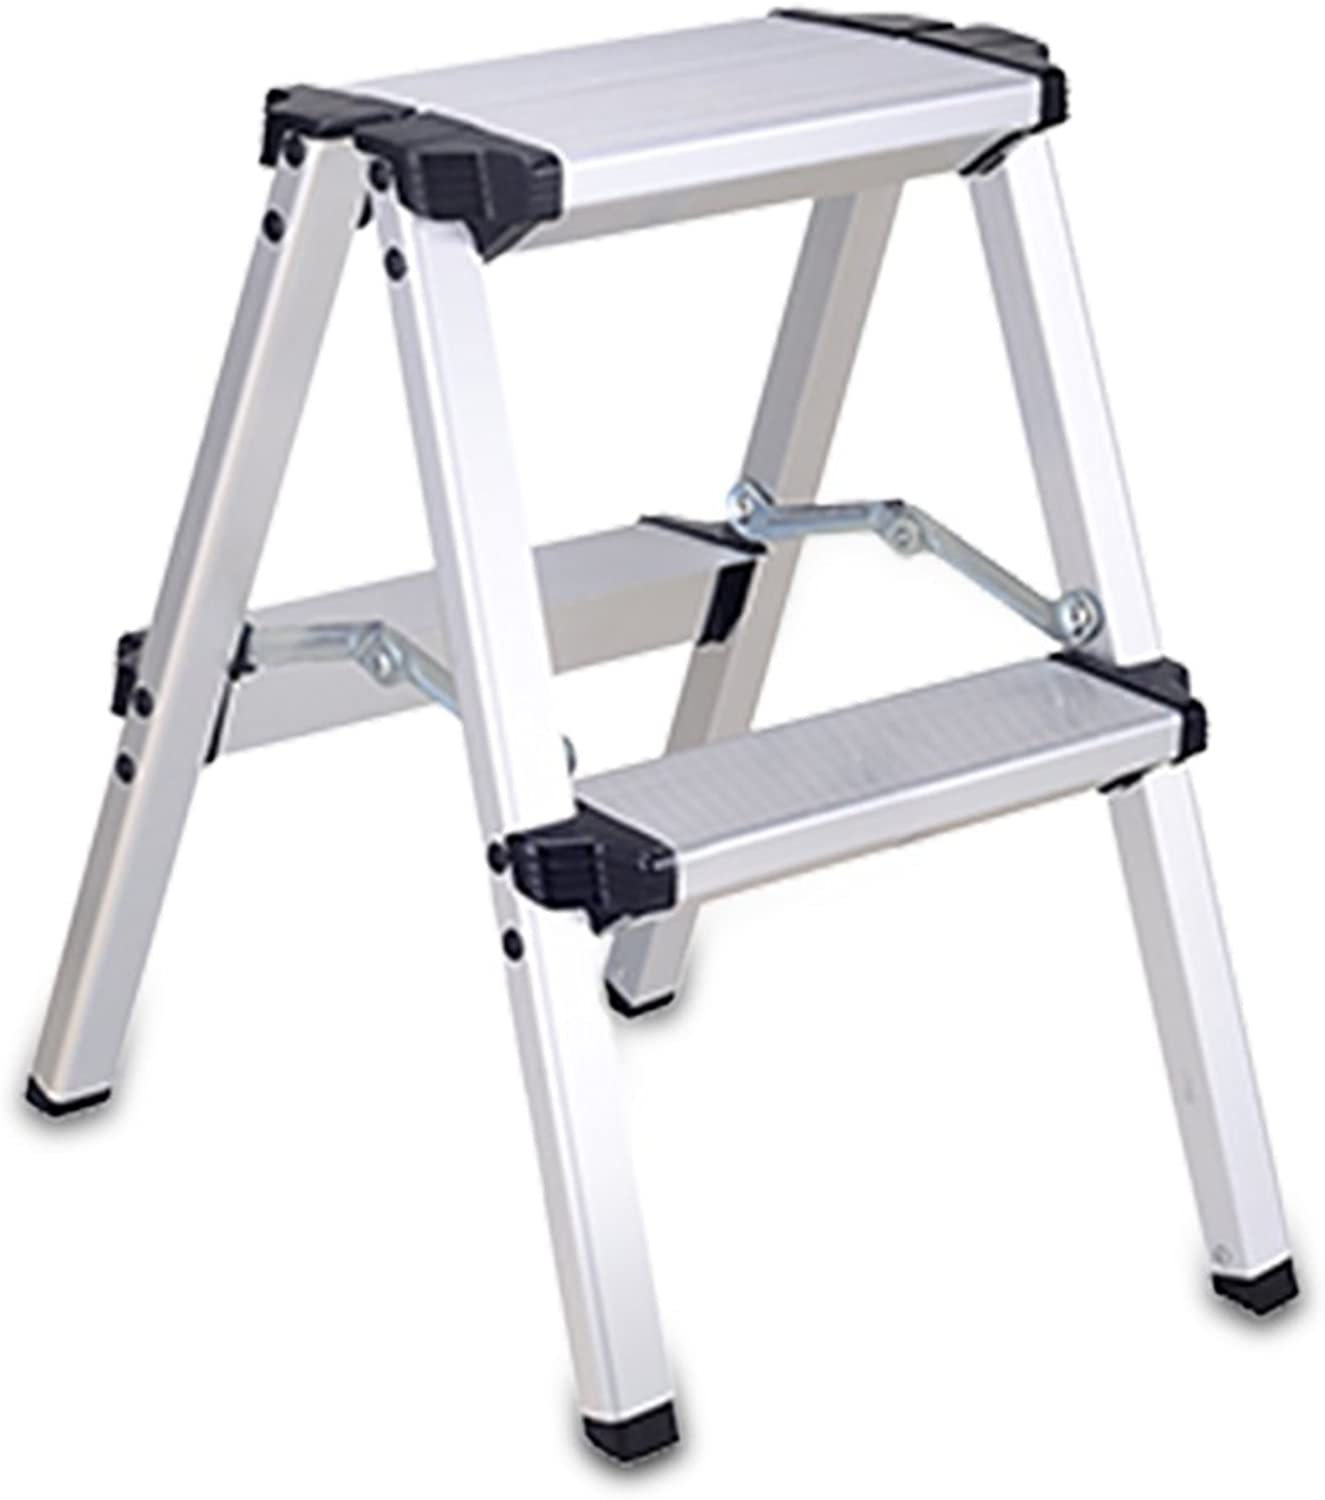 LXJYMX Home Folding Thicker Ladder, Multifunctional Indoor and Outdoor Engineering Ladder Stool, Aluminum Alloy Ladder. Climbing Ladder (Size   2-Step)